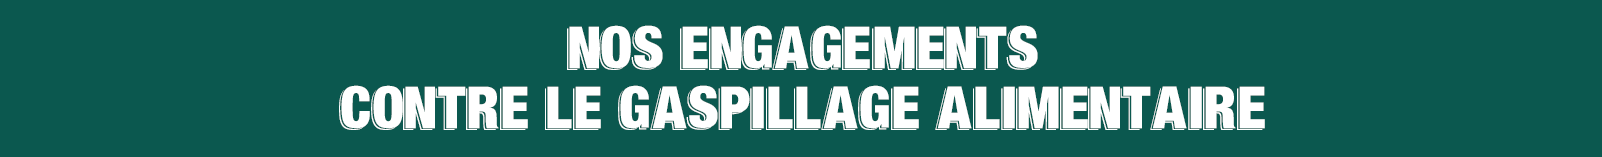 Engagement gaspillage alimentaire